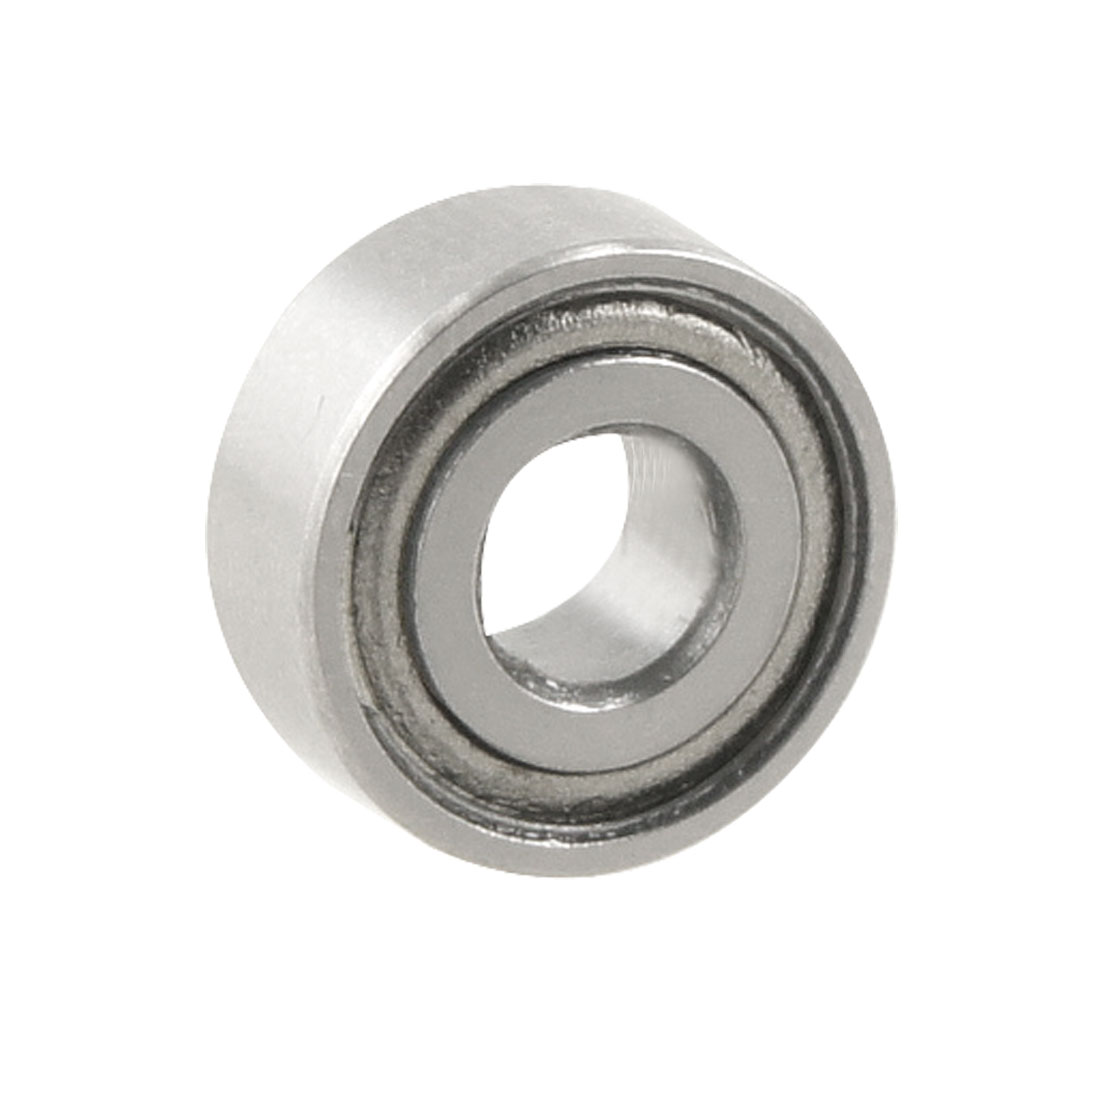 Silver Tone Magnetic 10mm x 4mm x 4mm Shield Ball Bearing